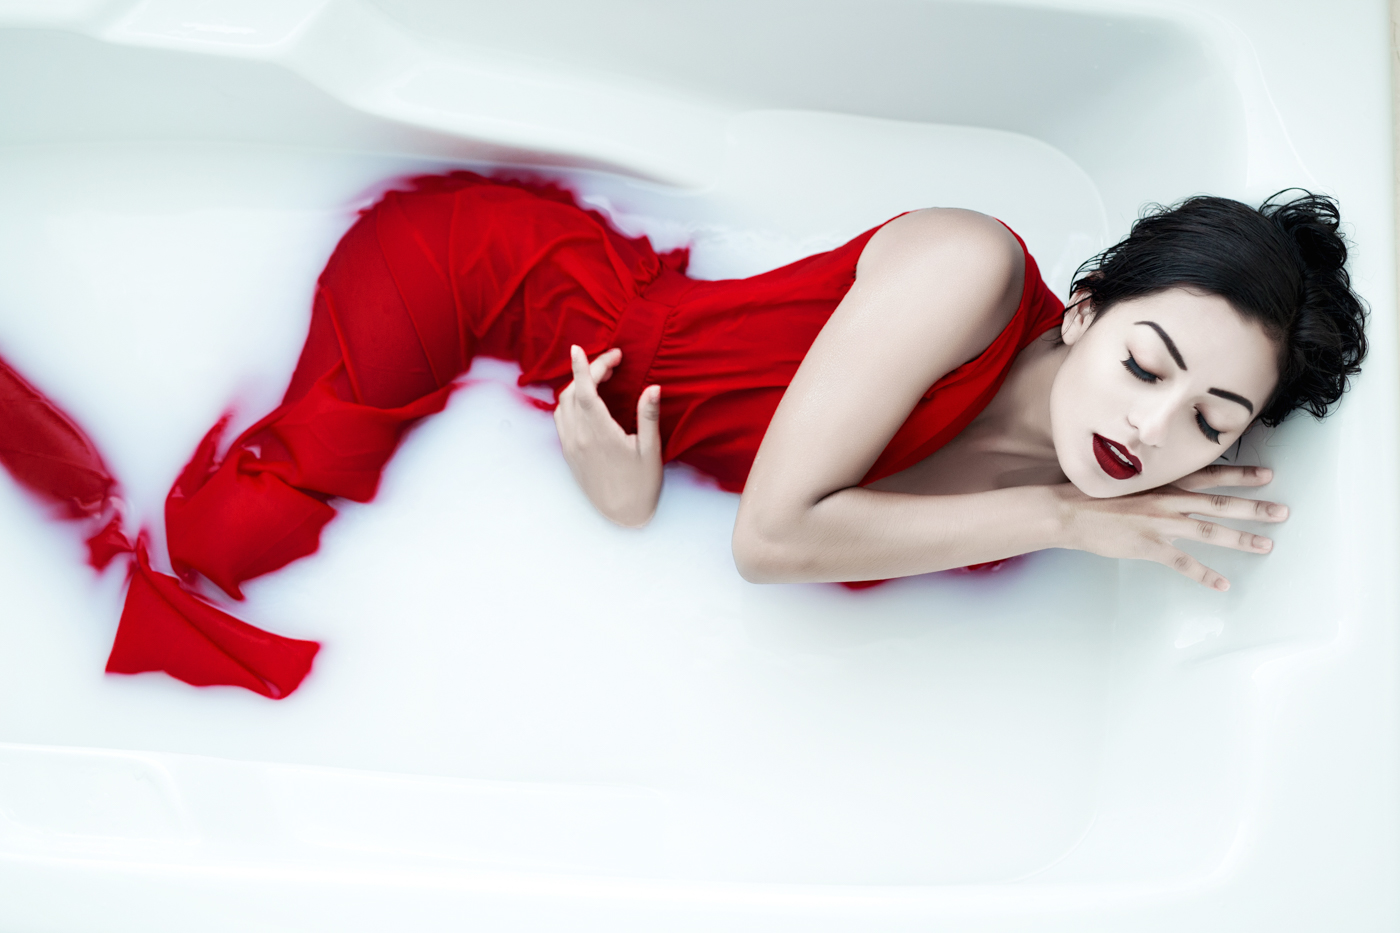 bathtub-photoshoot-at-my-studio-ksenia-pro-photography-4